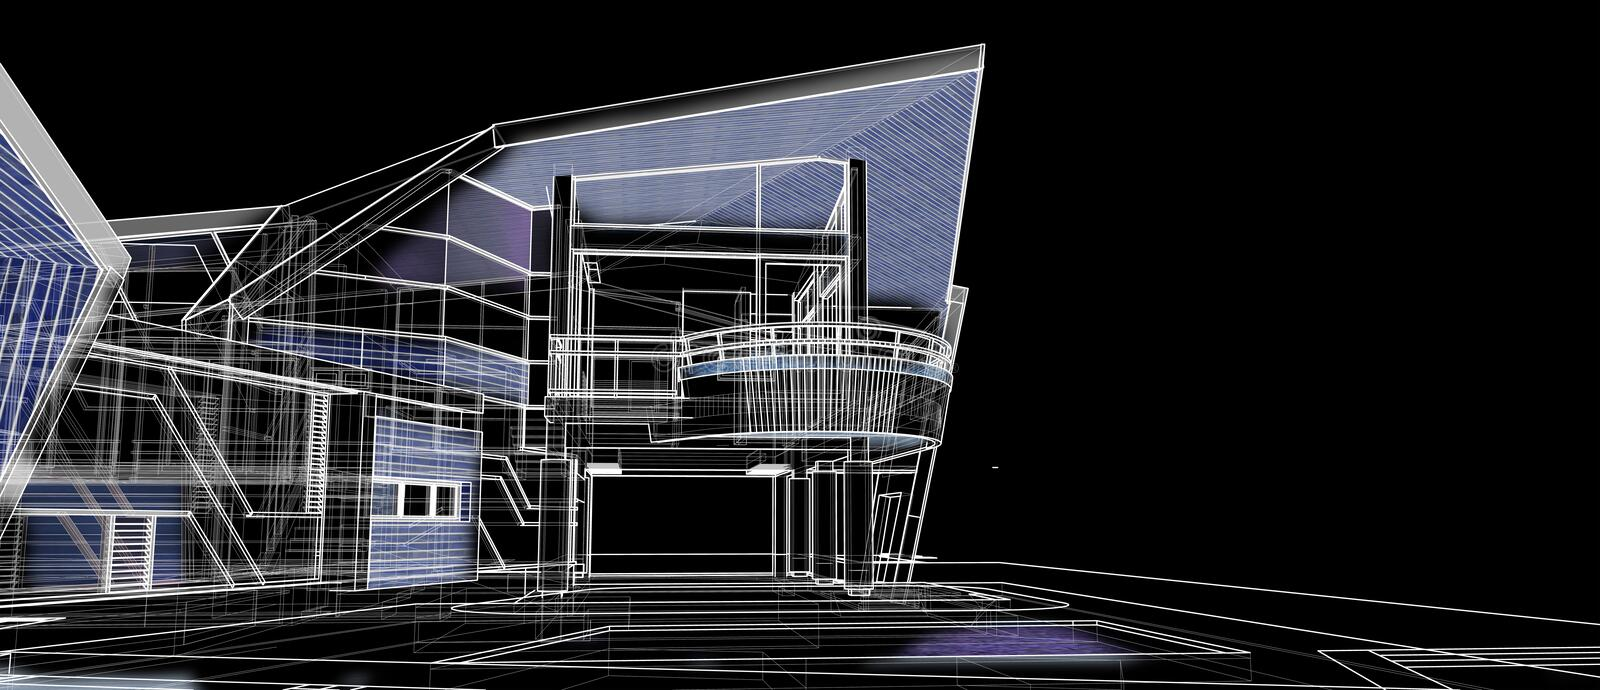 Architecture exterior facade design concept 3d perspective wire frame rendering black background. For abstract background or wallpaper destops architecture stock photo